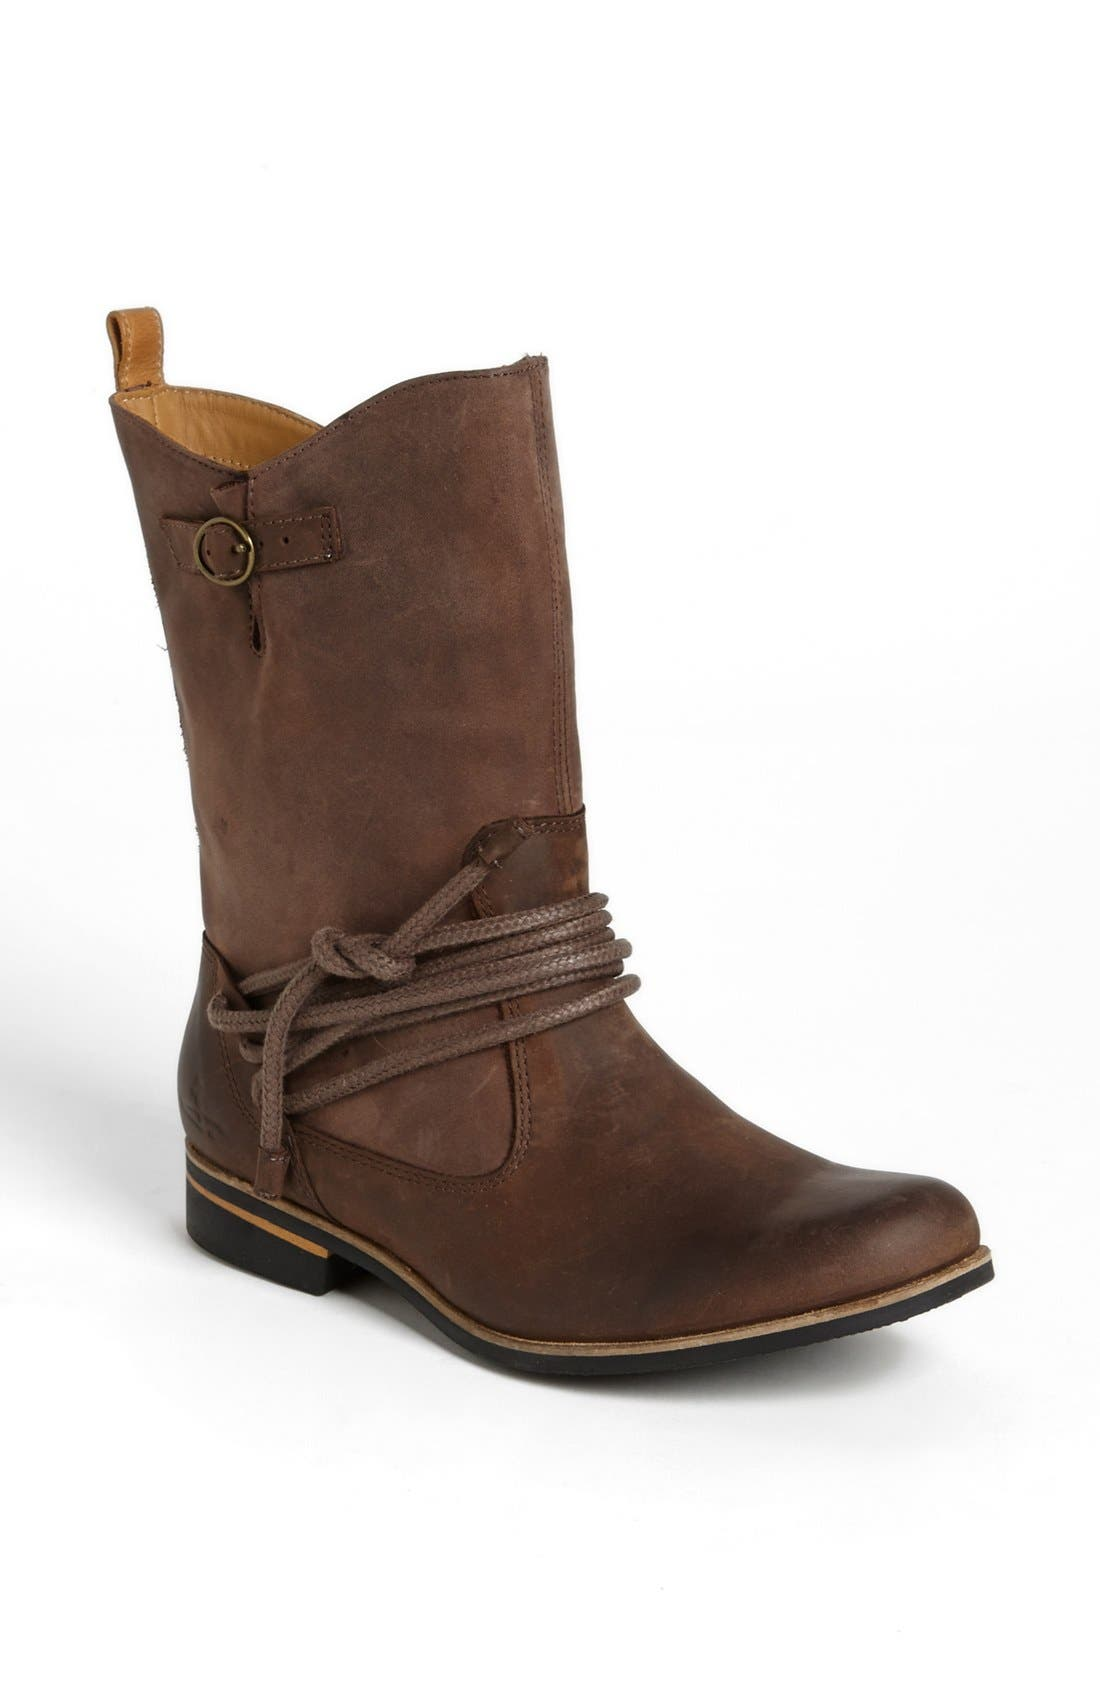 Alternate Image 1 Selected - J SHOES 'Victoria' Boot